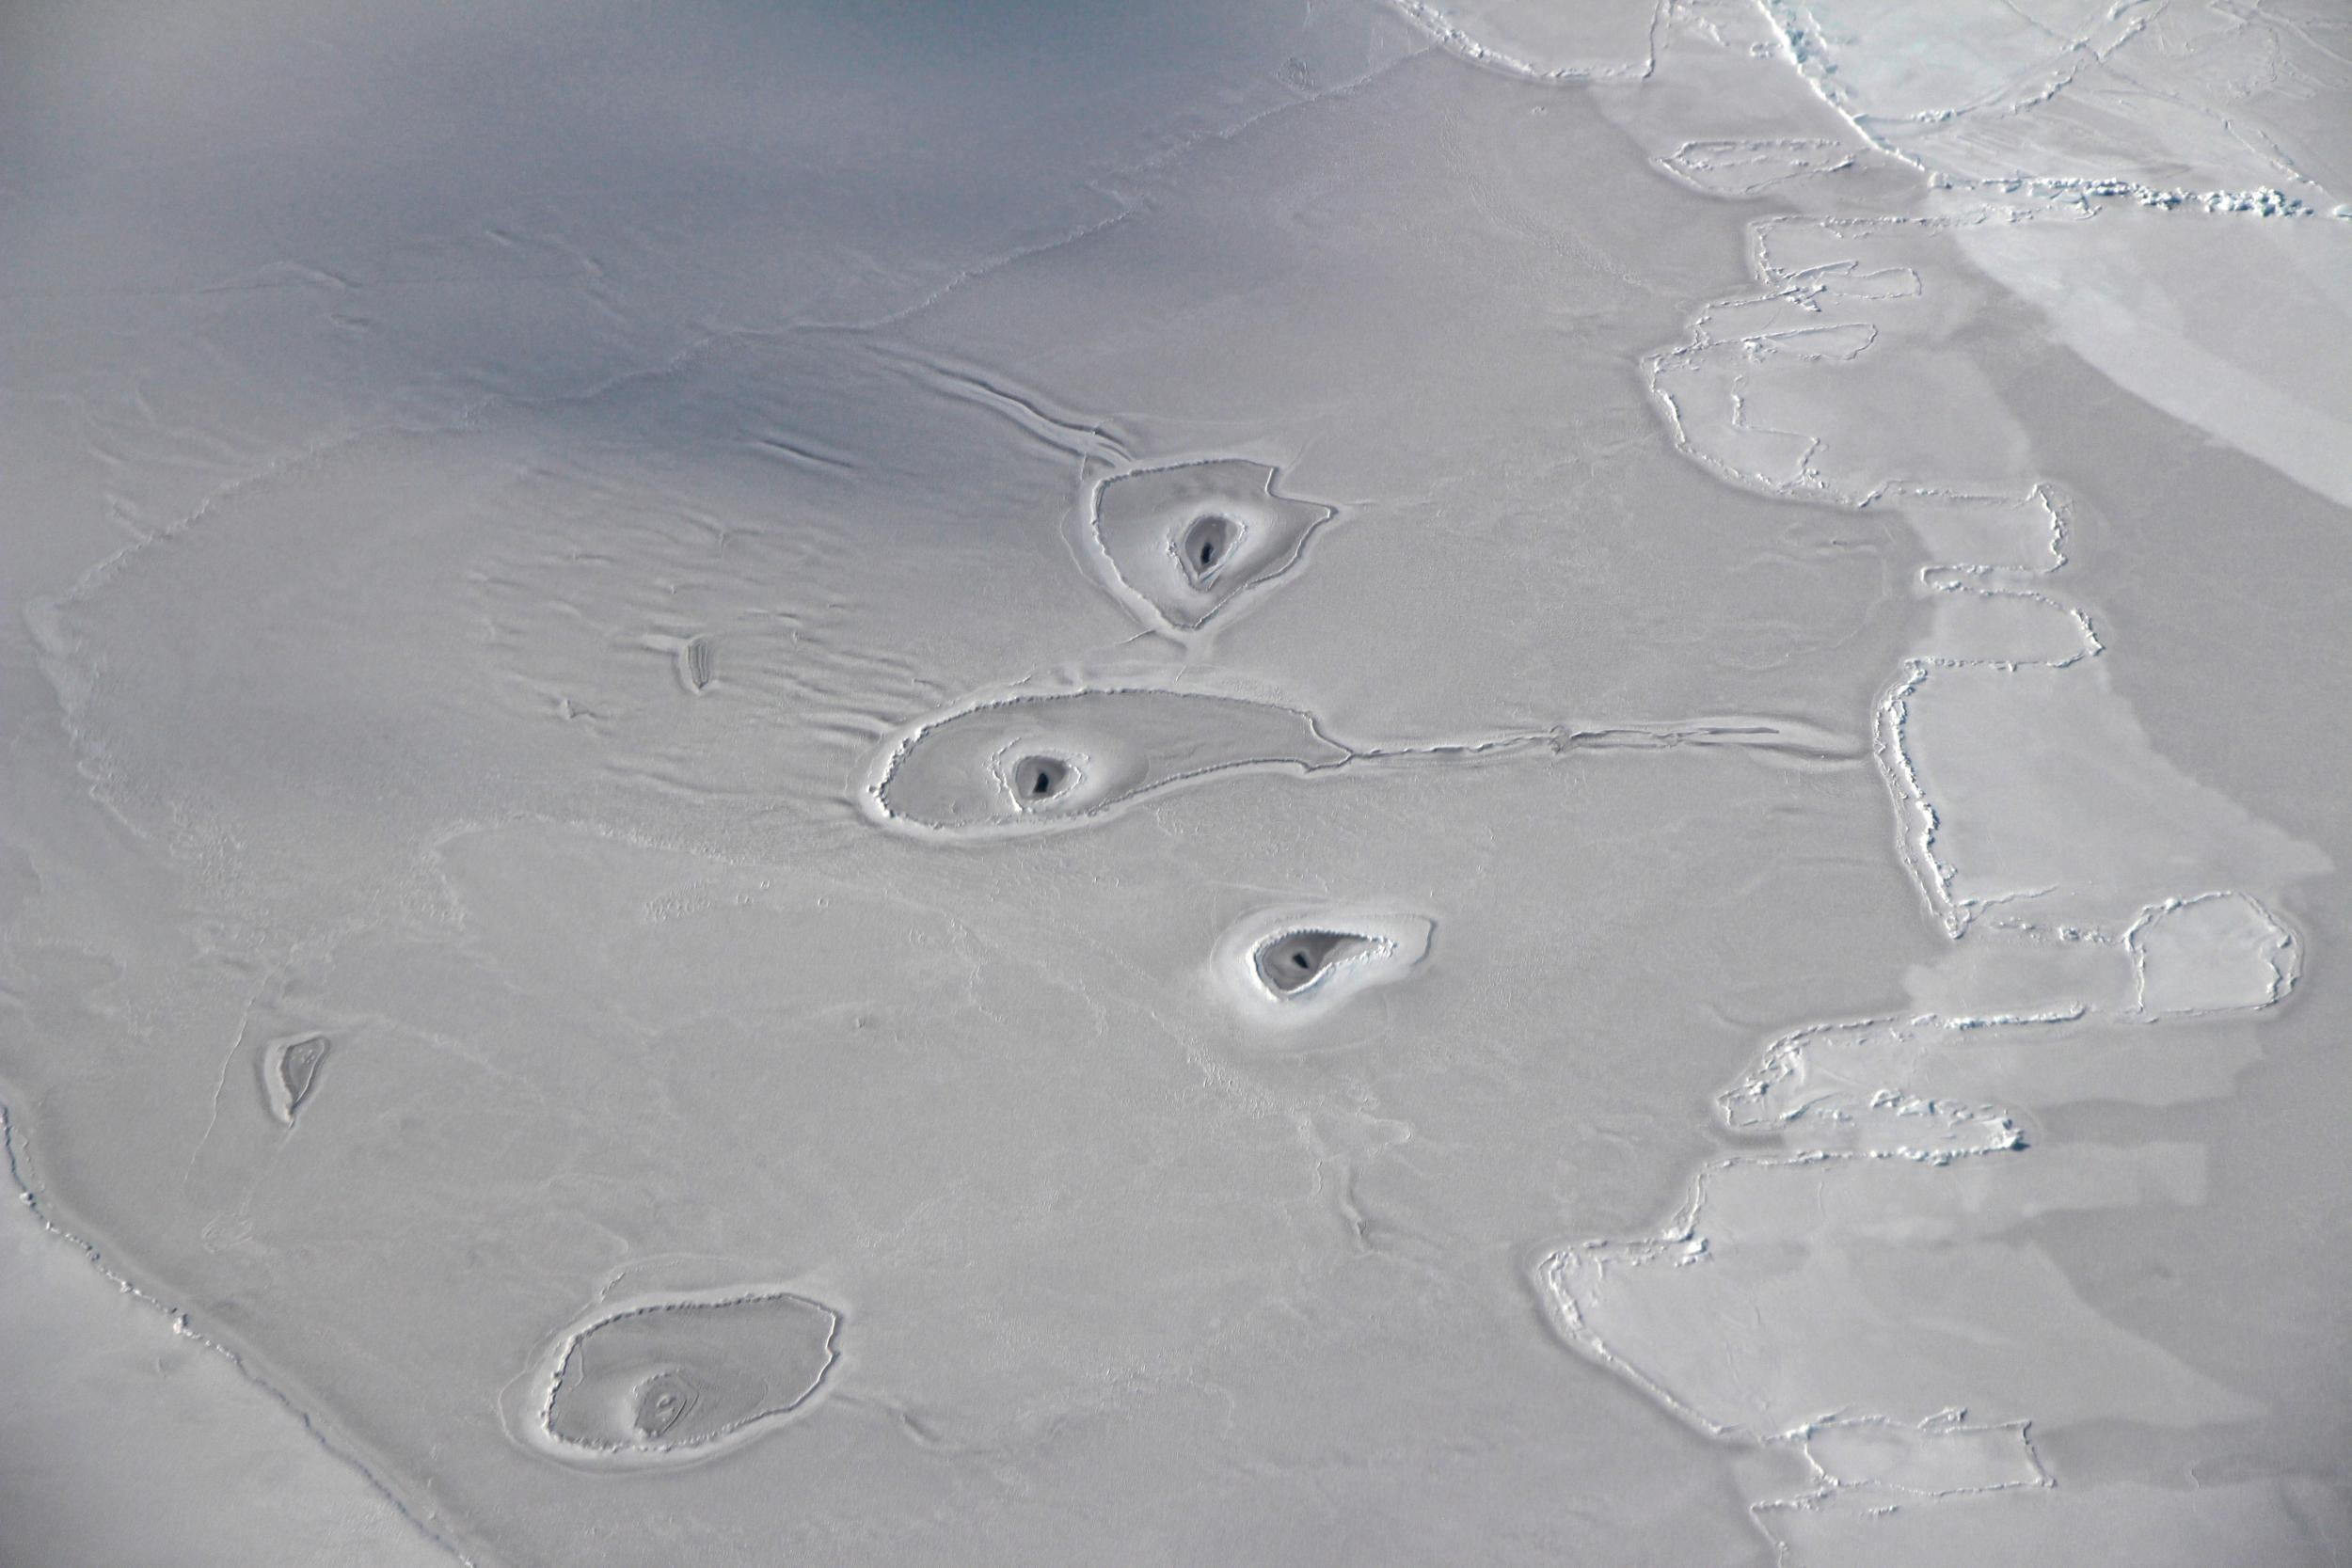 Nasa scientists baffled by unexplained strange shapes found in the Arctic